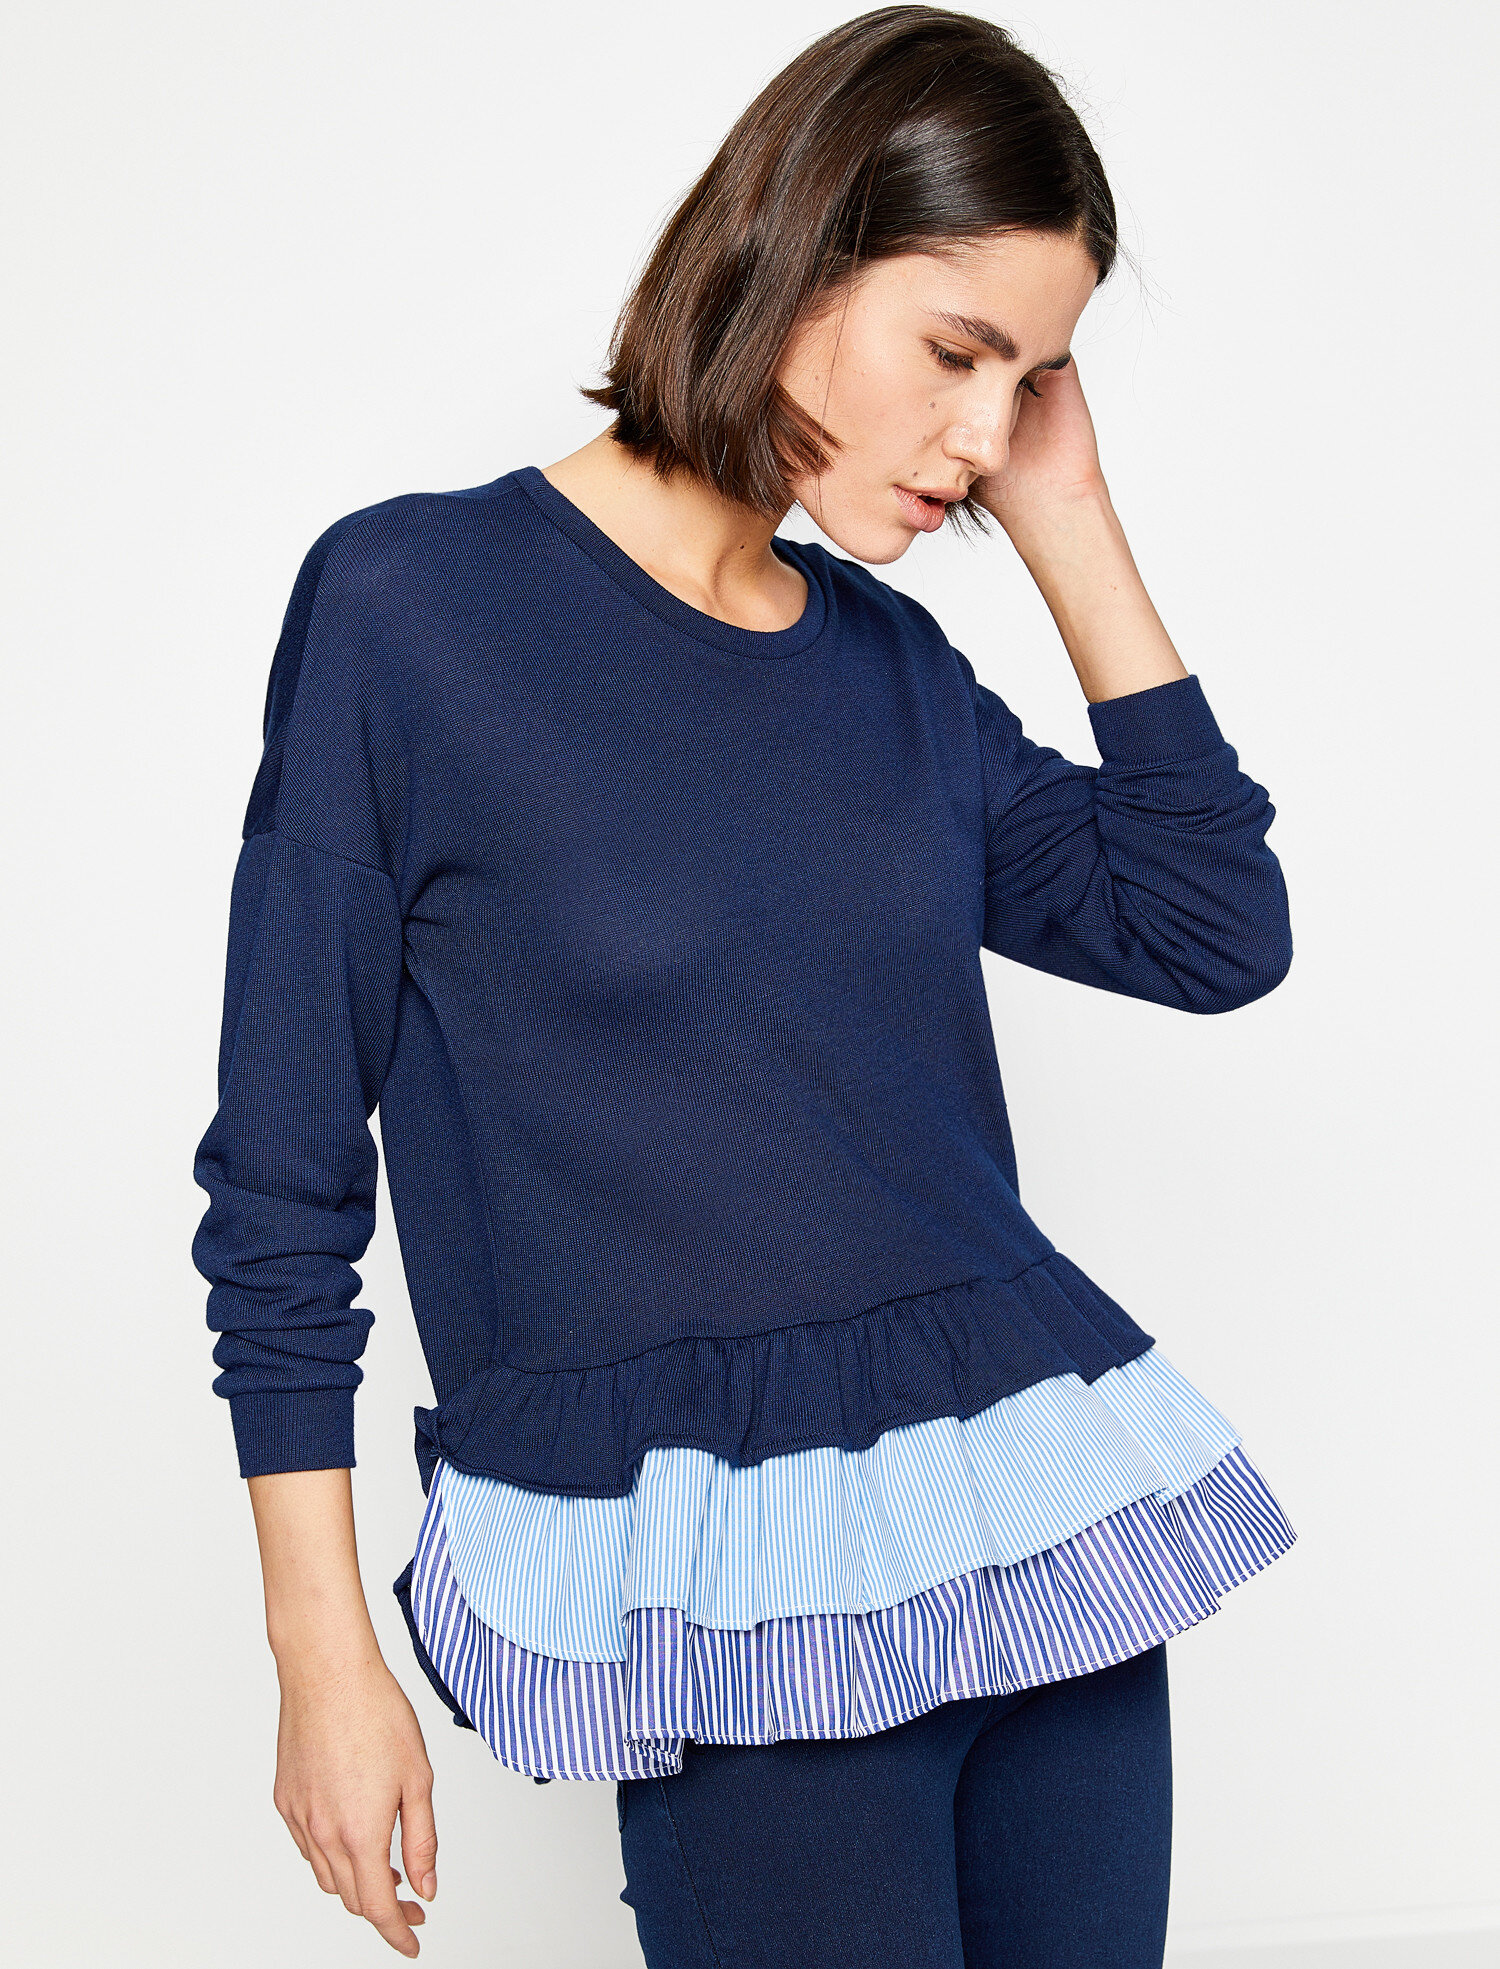 frilled jumper. pic 1; pic 2 ...